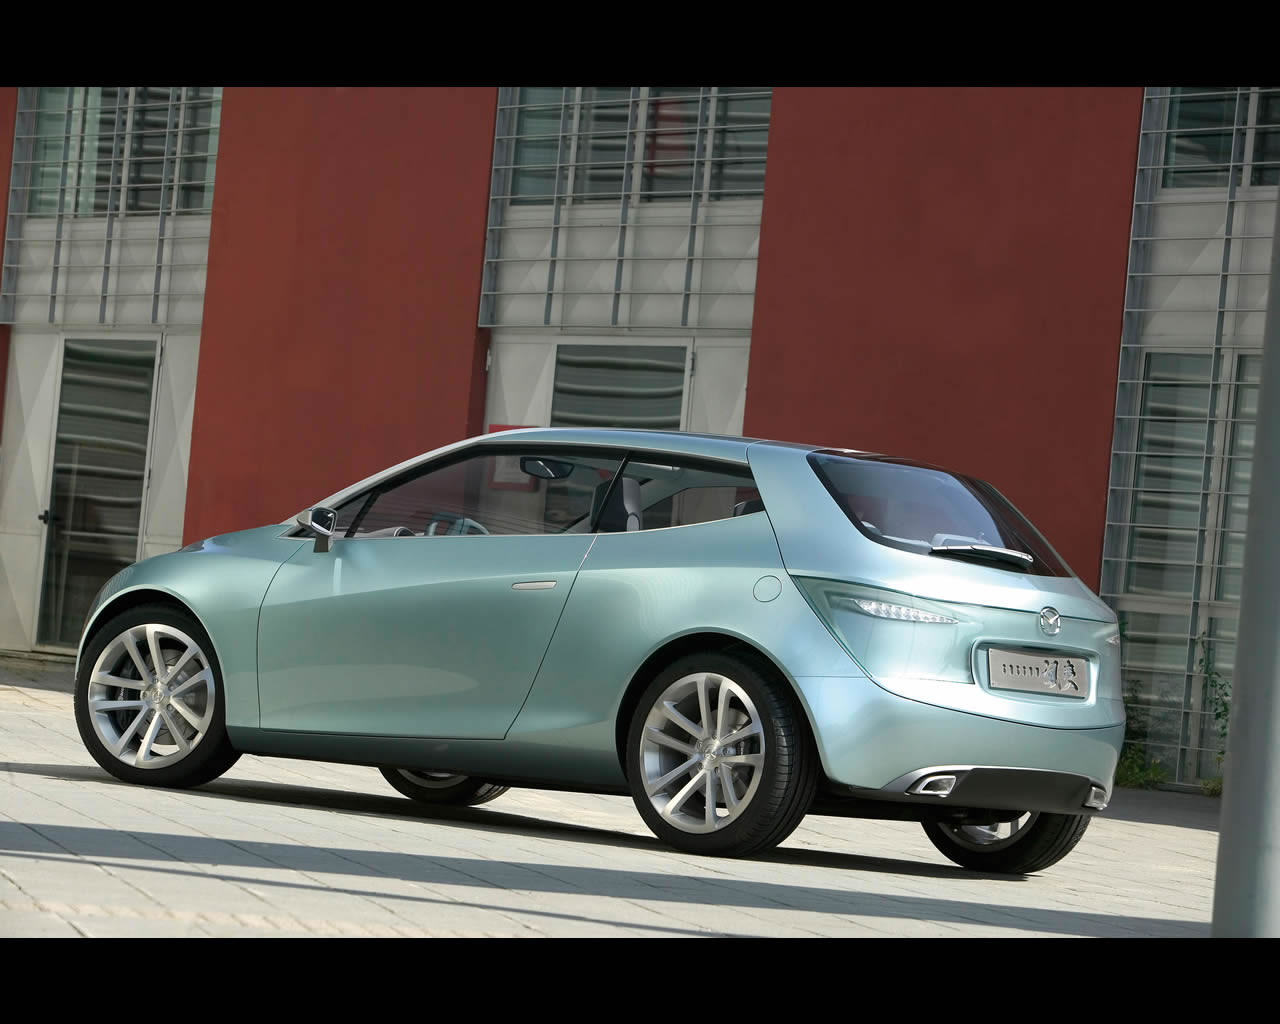 http://www.autoconcept-reviews.com/cars_reviews/mazda/mazda-sassou/wallpaper/mazda_sassou_2005_012_print.jpg